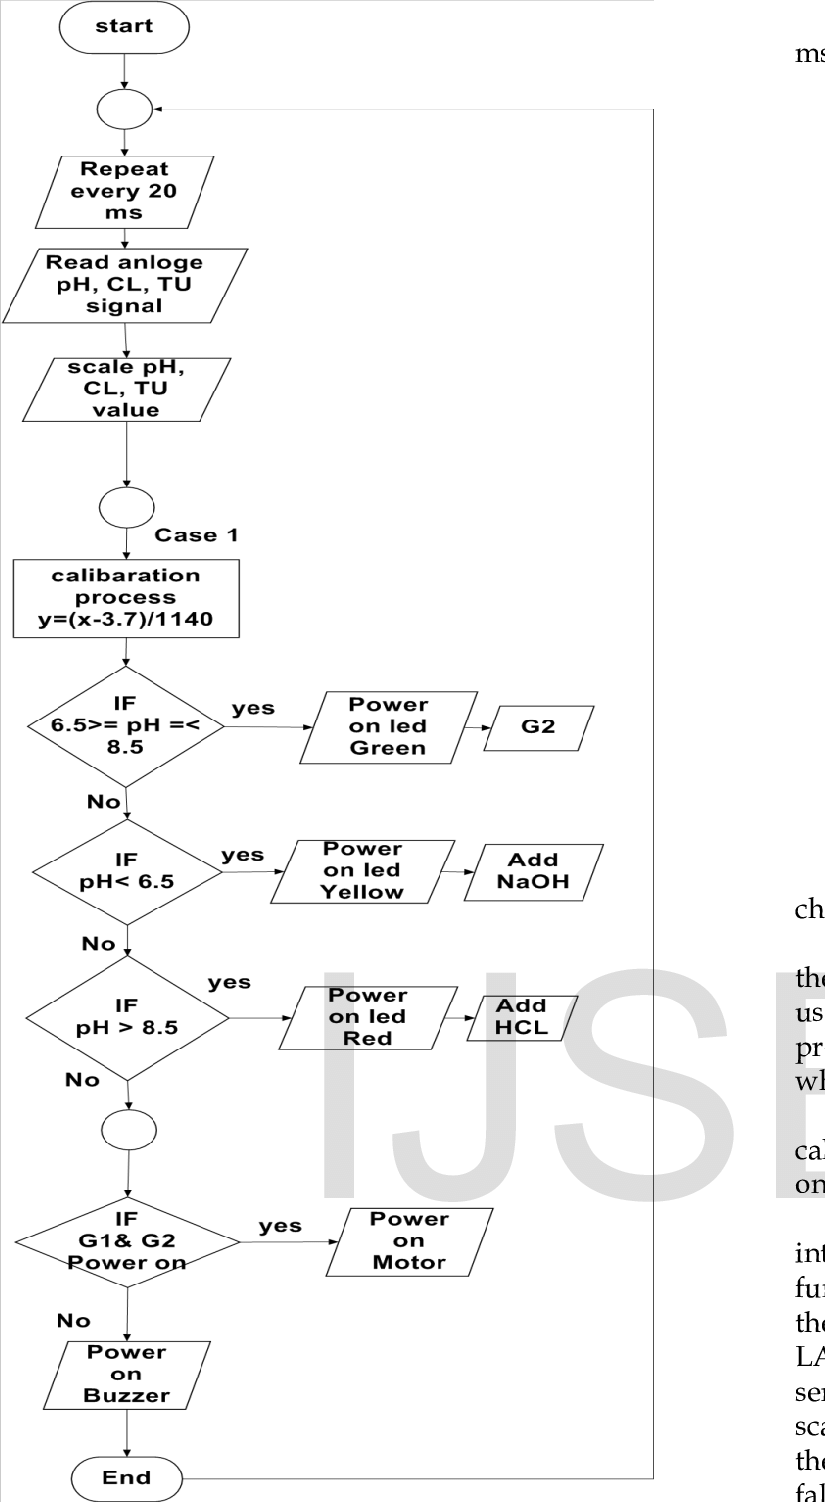 medium resolution of case one from flow chart of the ladder logic diagram